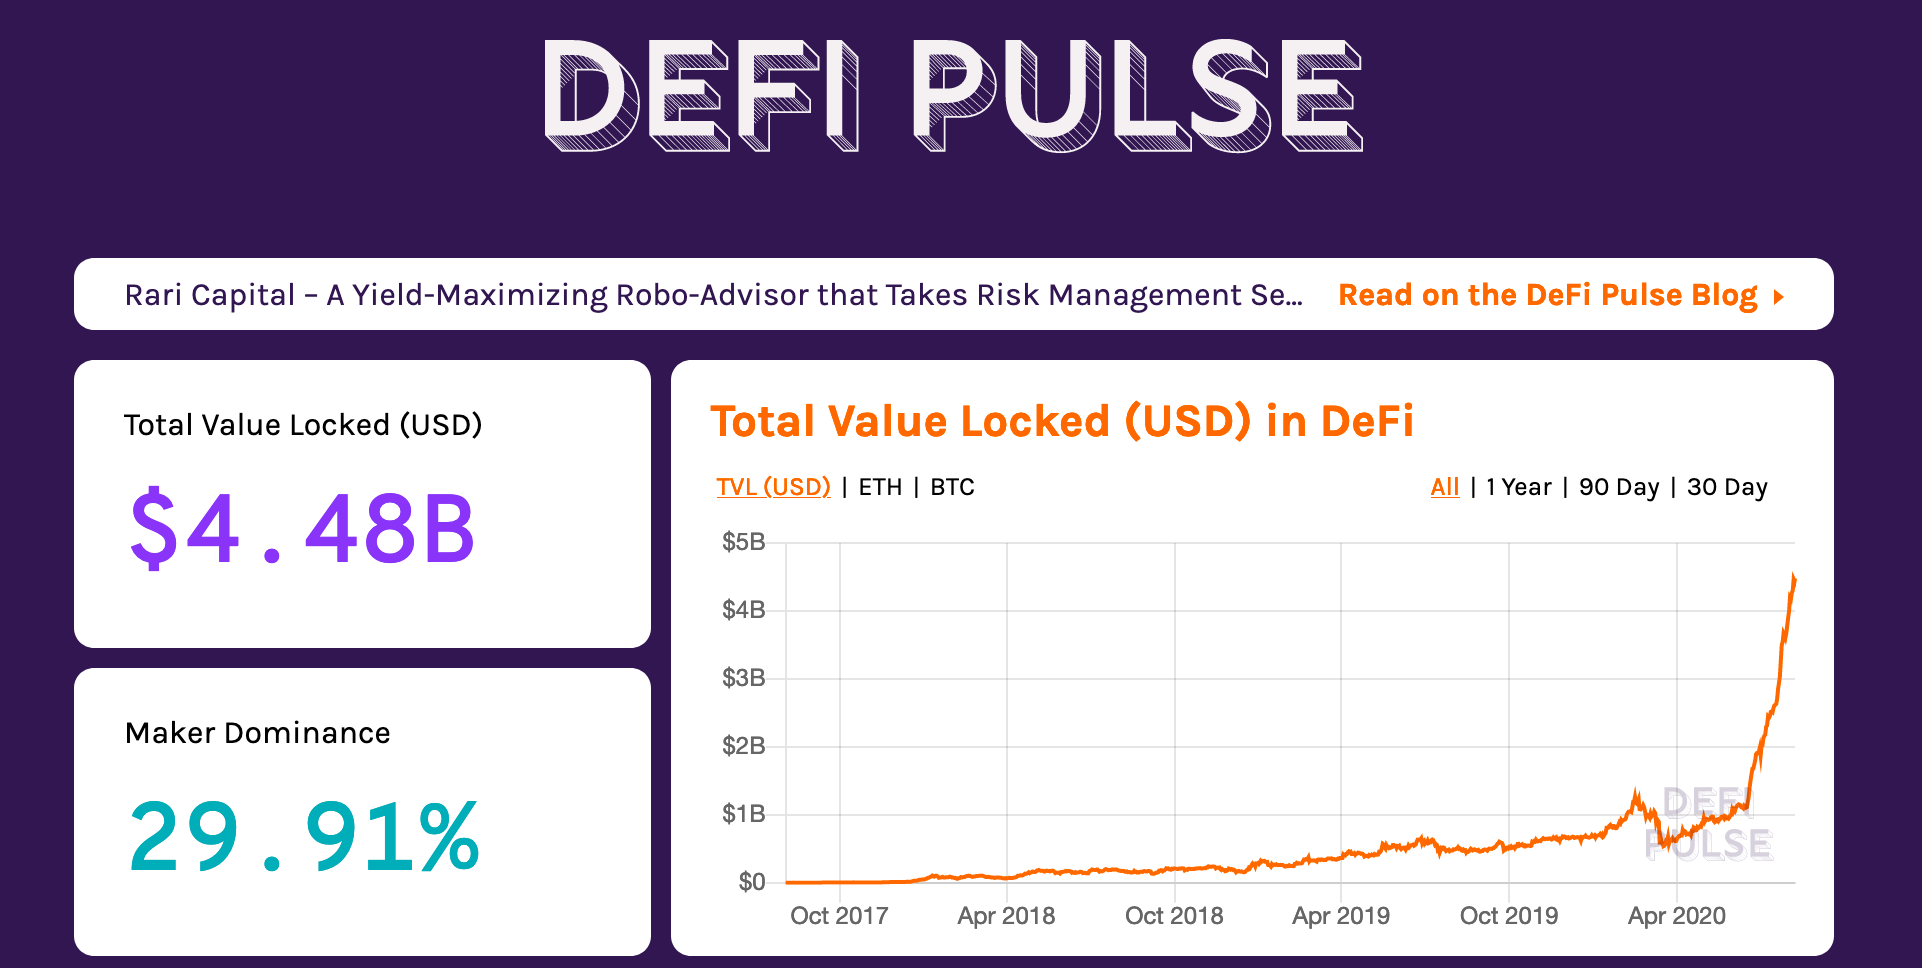 Defi Pulse total value locked graph